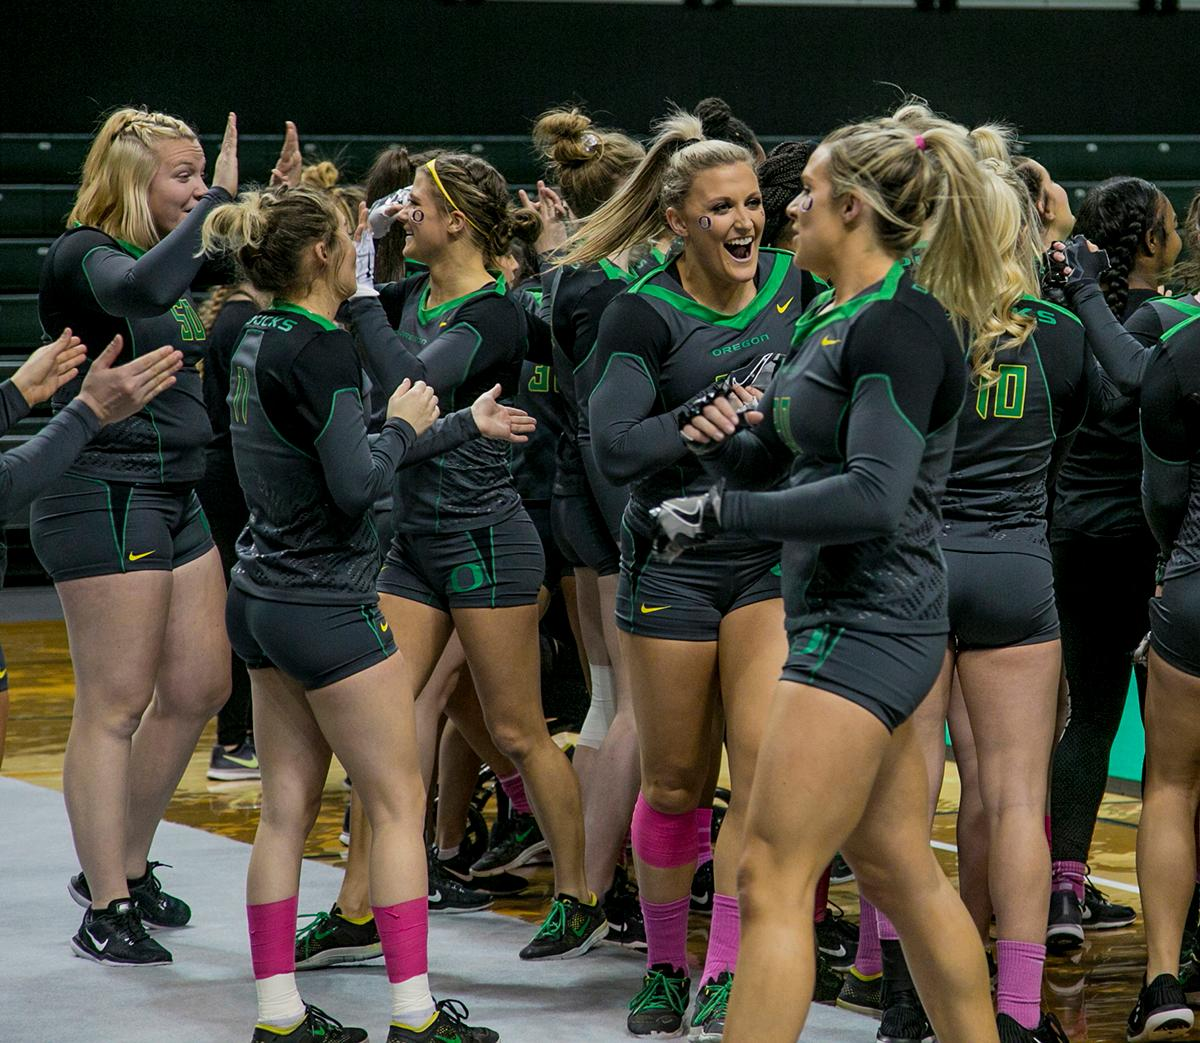 The Oregon Ducks Acro and Tumbling team defeated Hawaii Pacific in their second meet of the season and their first home meet with a score of 280.10 to 267.595. The Ducks won all six categories: 38.45 to 38.30 in compulsory; 29.55 to 28.55 in acro; 29.50 to 28.40 in pyramid; 29.10 to 27.50 in toss; 56.30 to 54.075 in tumbling; and 97.20 to 90.77 in team. The Ducks next face off against their arch rivals the Baylor Bears at Baylor February 24 and then return to Matt Knight Arena for a Tri Meet against Quinnipac and Gannon on March 11. Photo by Jessica Smith, Oregon News Lab